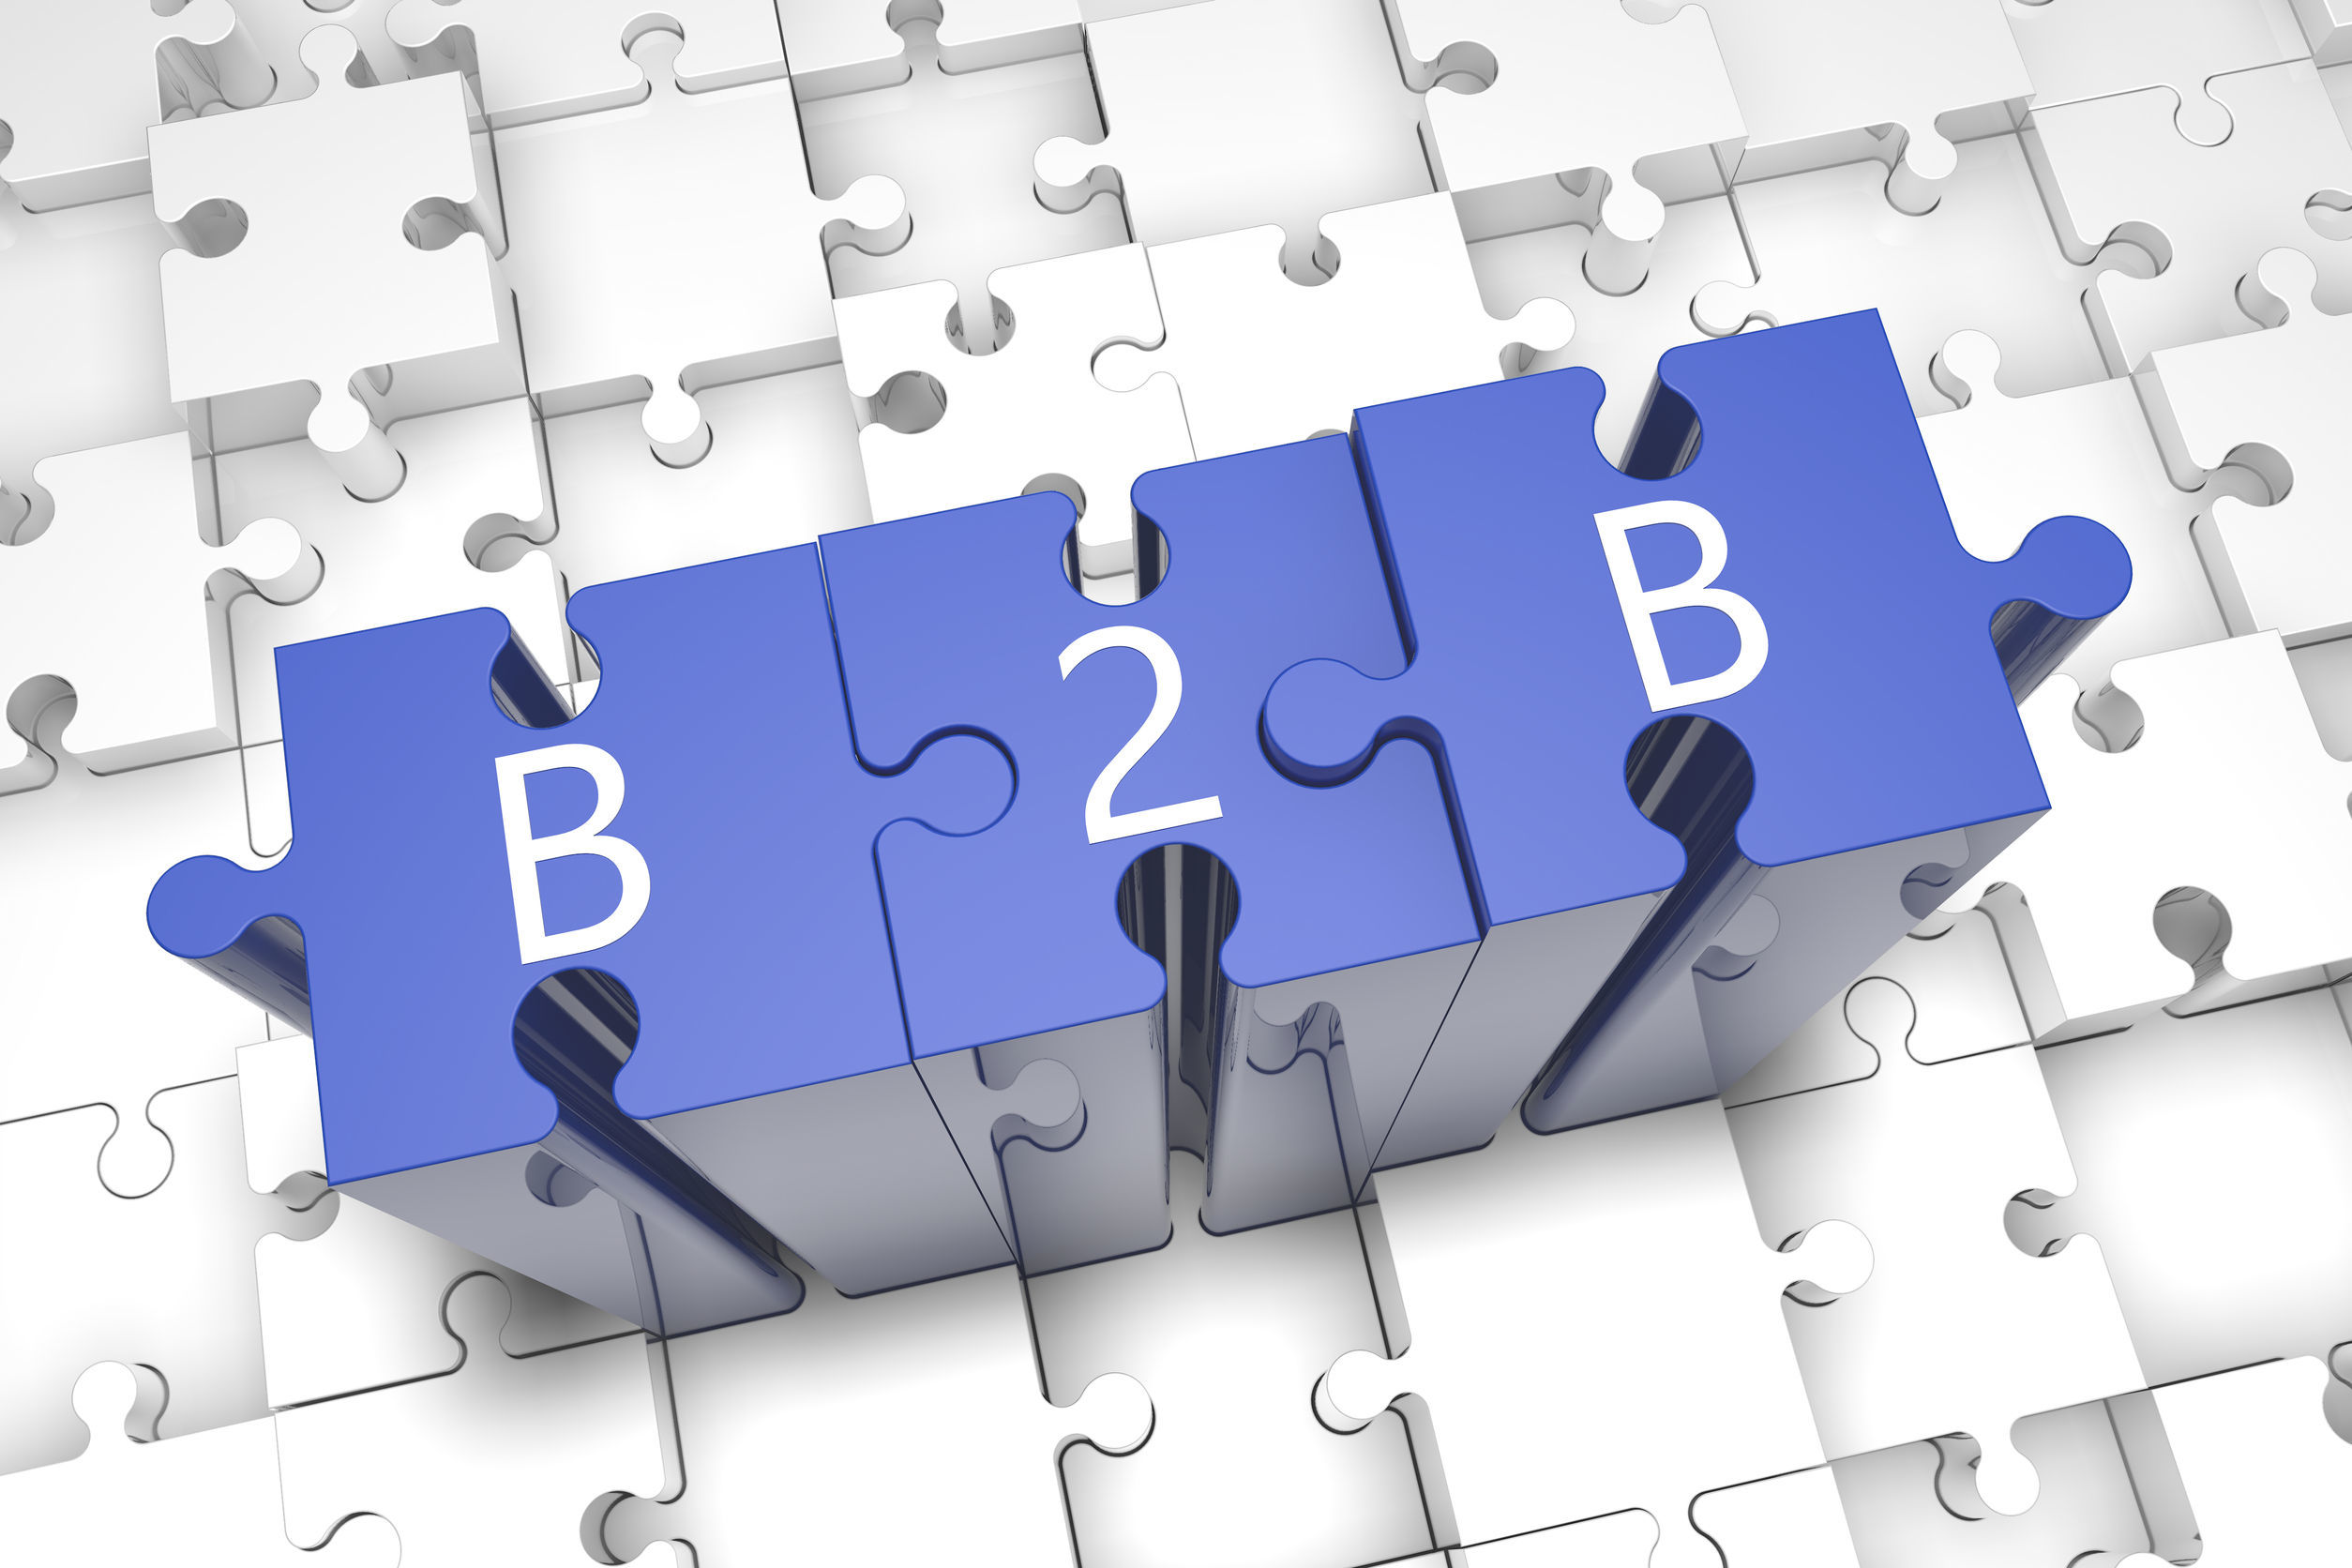 Marketing Manifesto of the B2B Marketer